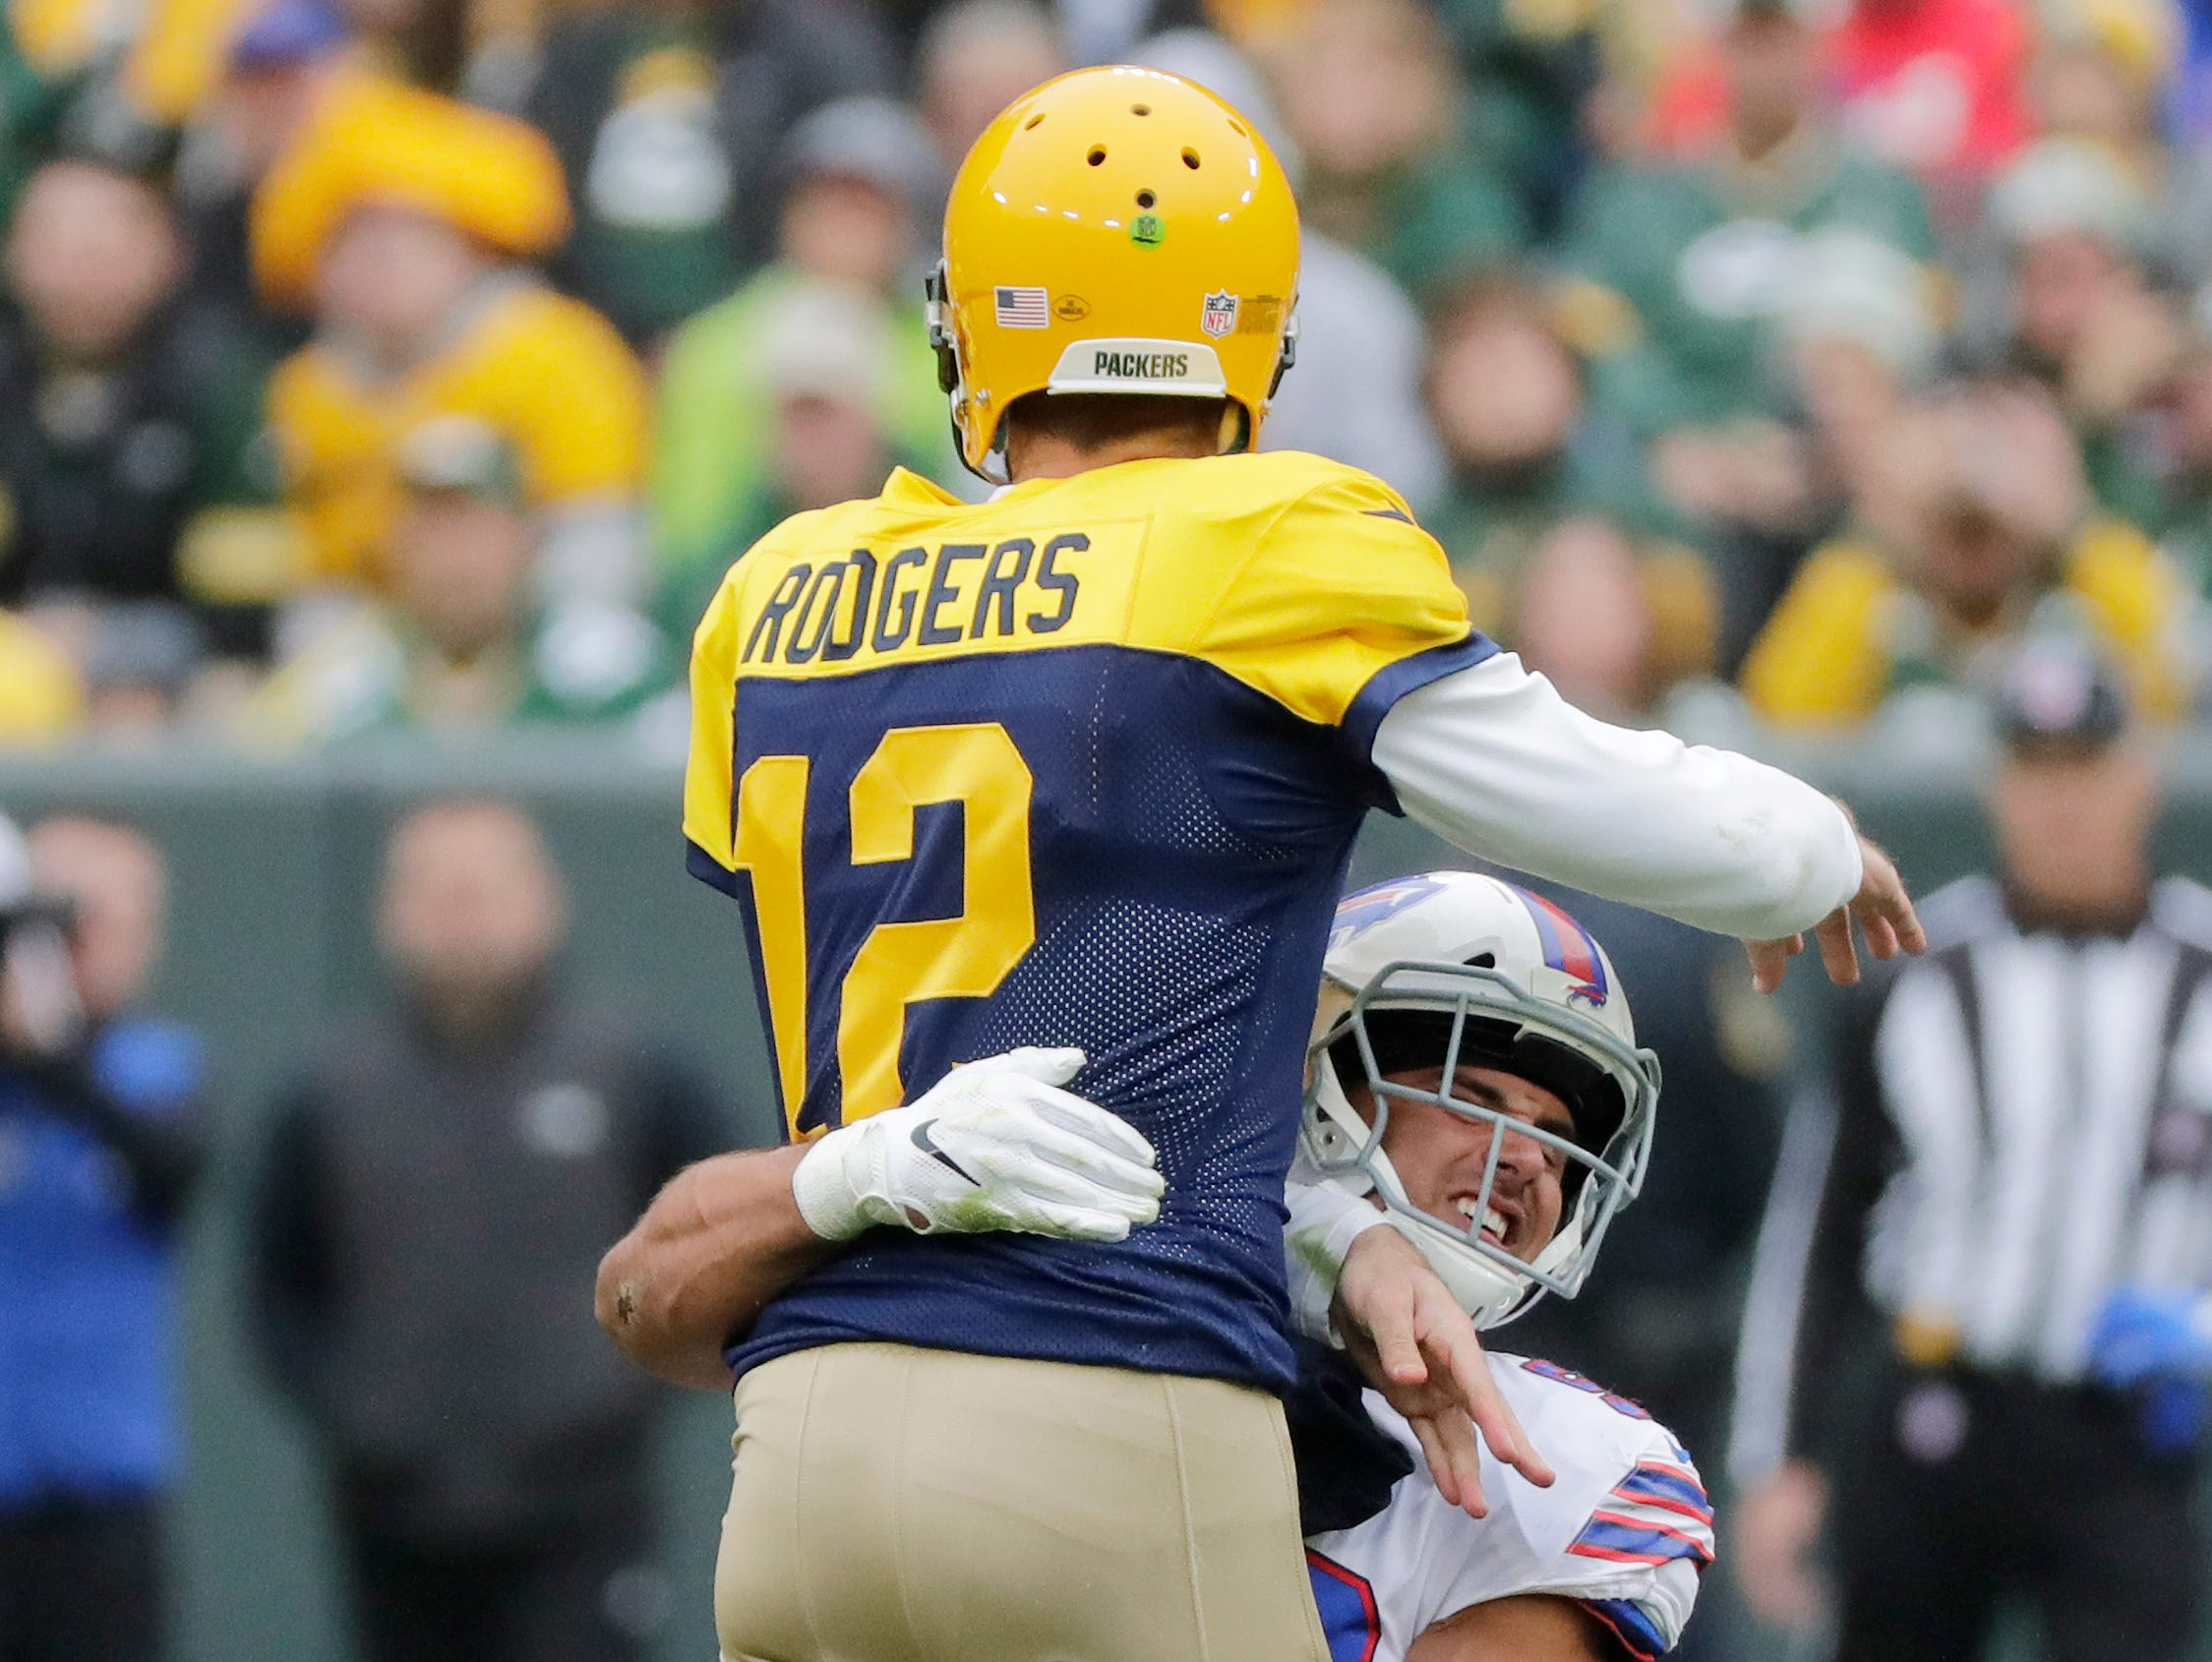 Green Bay Packers quarterback Aaron Rodgers (12) is hit by Buffalo Bills linebacker Matt Milano (58) in the third quarter at Lambeau Field on Sunday, September 30, 2018 in Green Bay, Wis.